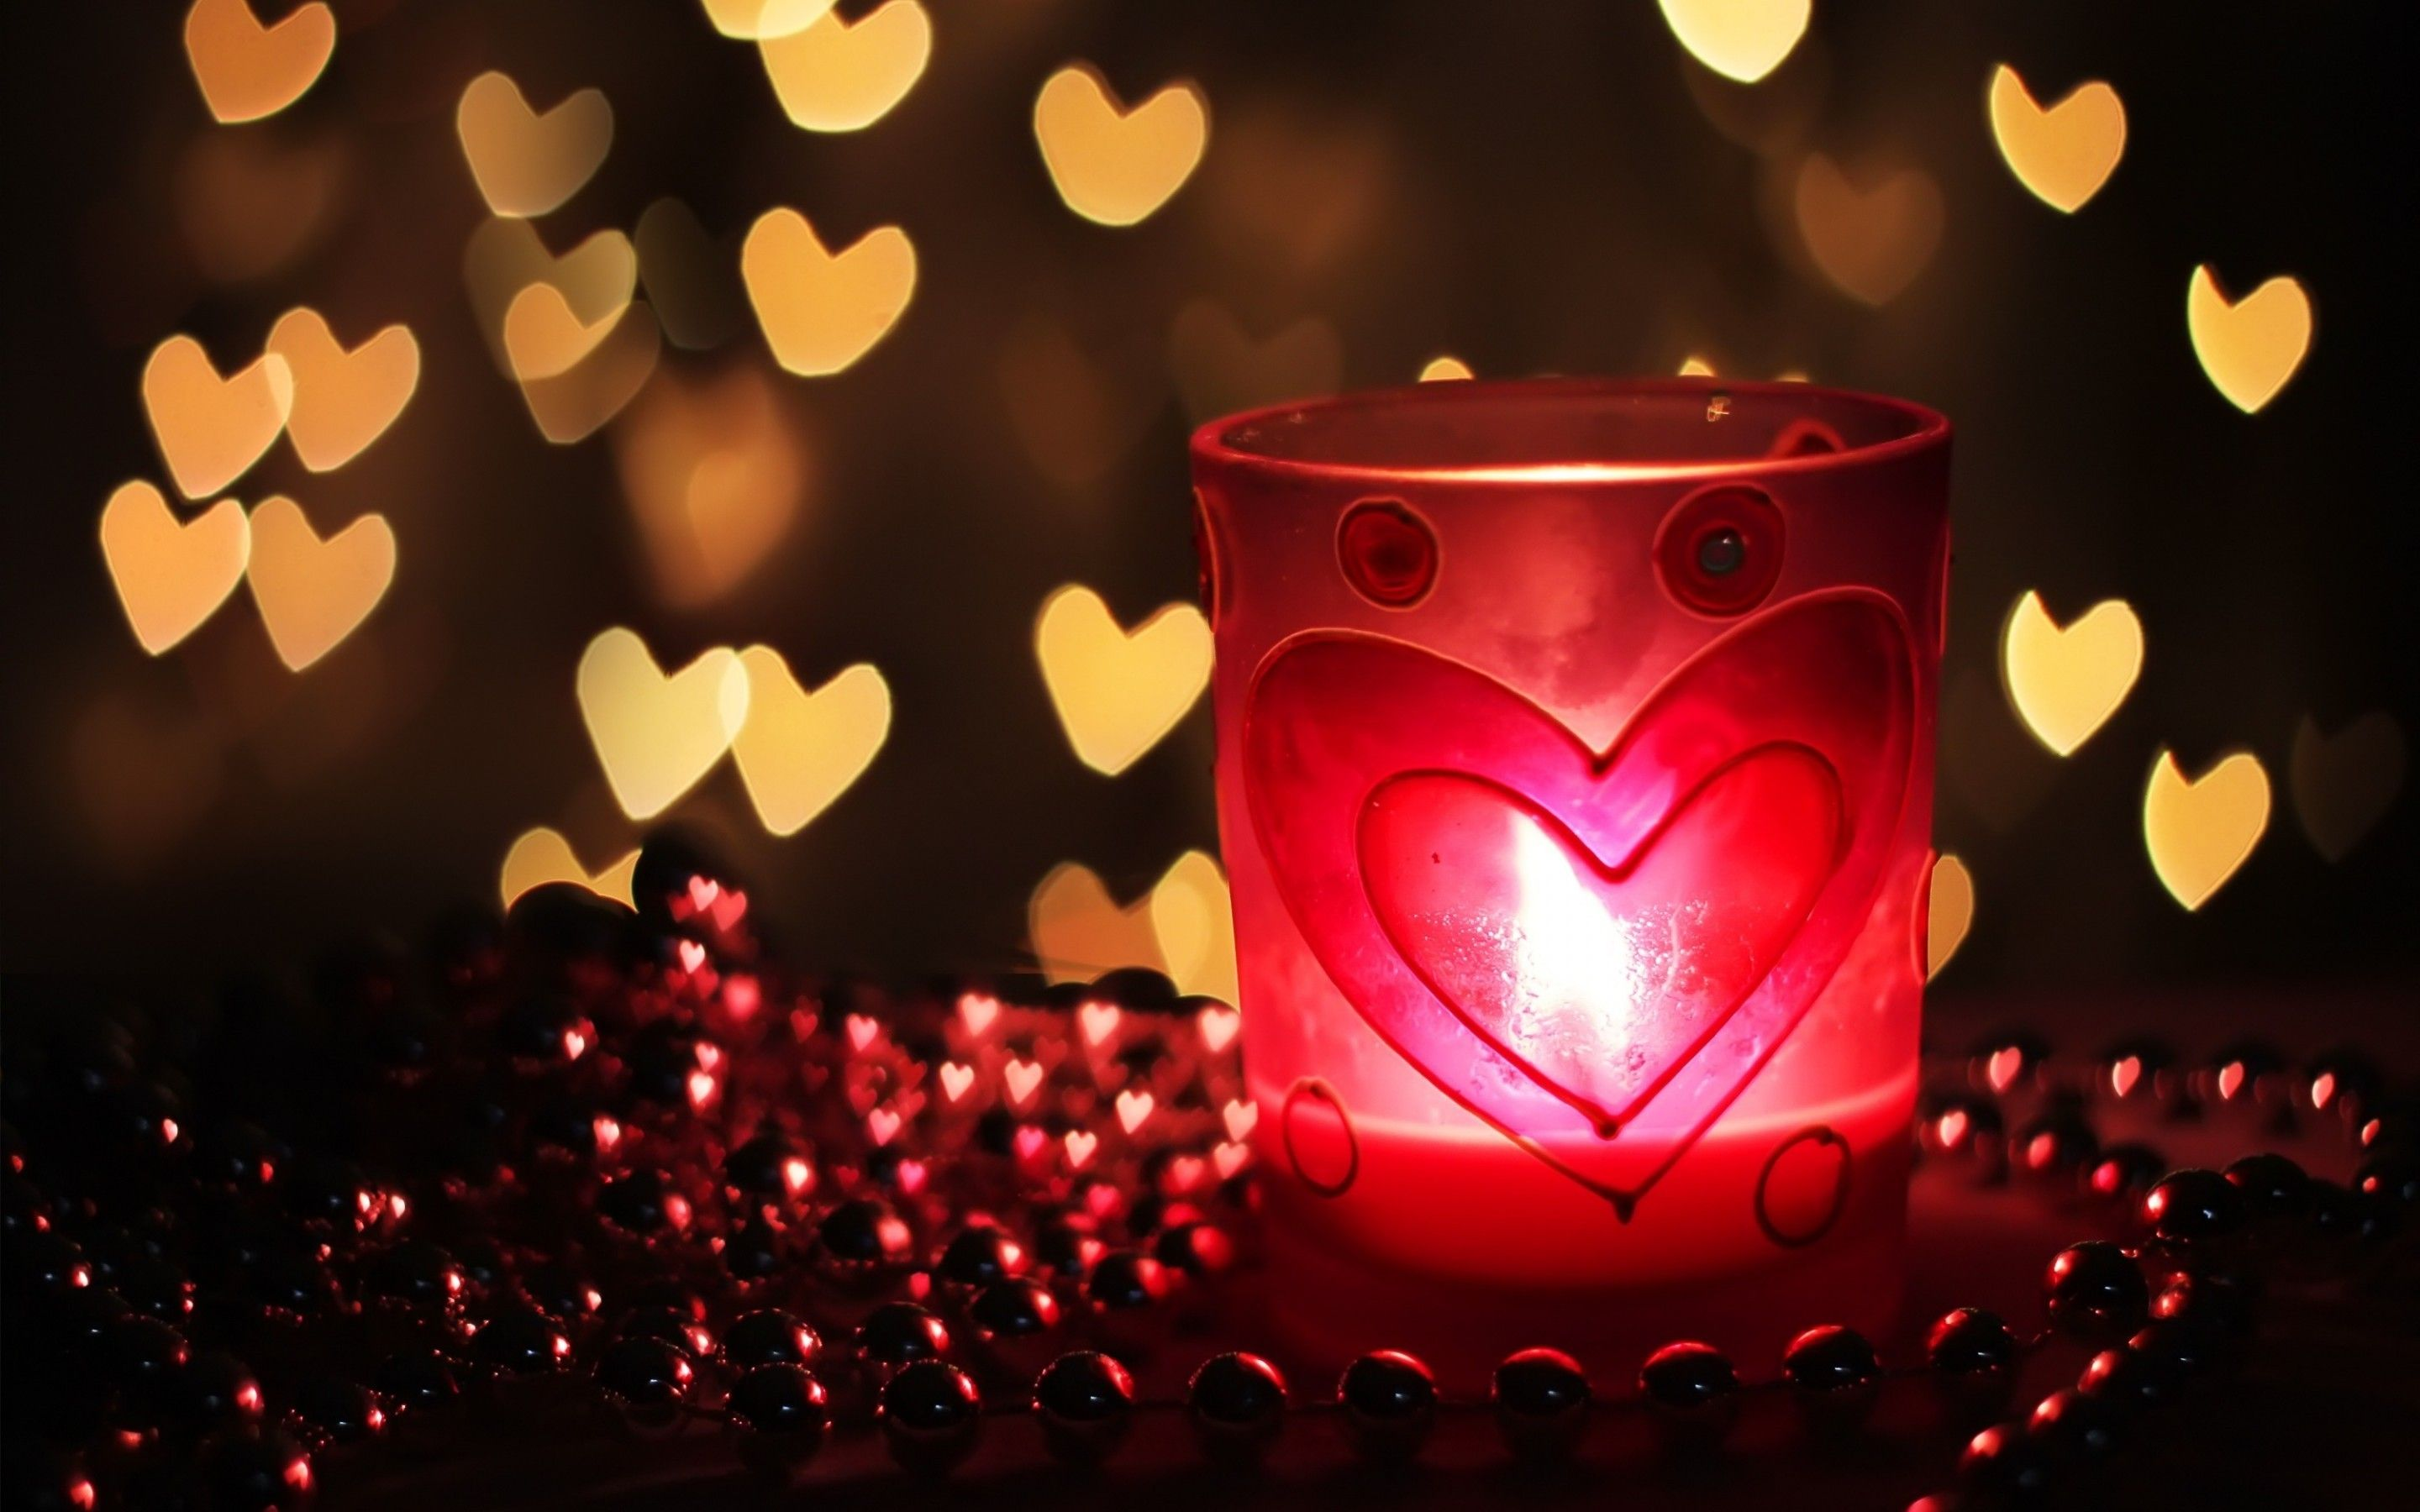 Beautiful Candle Light Decoration Photo Gallery | Rocks wallpaper ... for Heart Candle Wallpaper  45hul